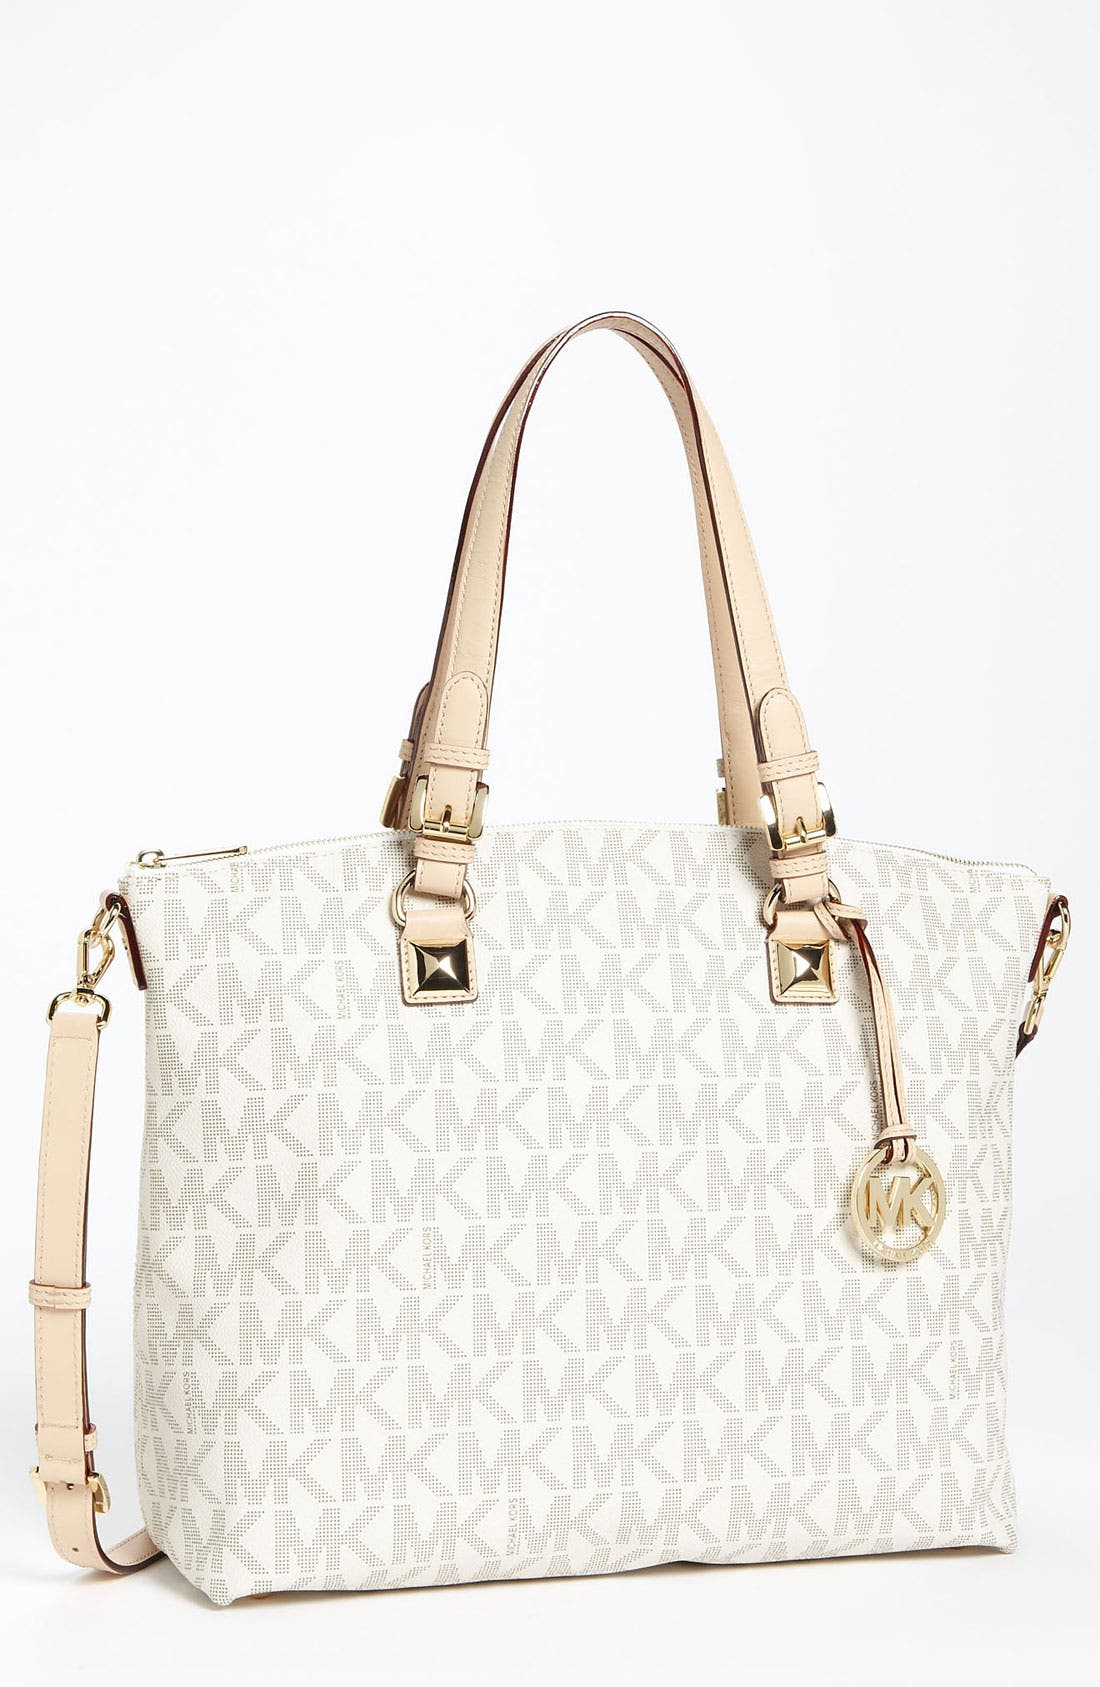 Alternate Image 1 Selected - MICHAEL Michael Kors 'Jet Set - Signature' Tote